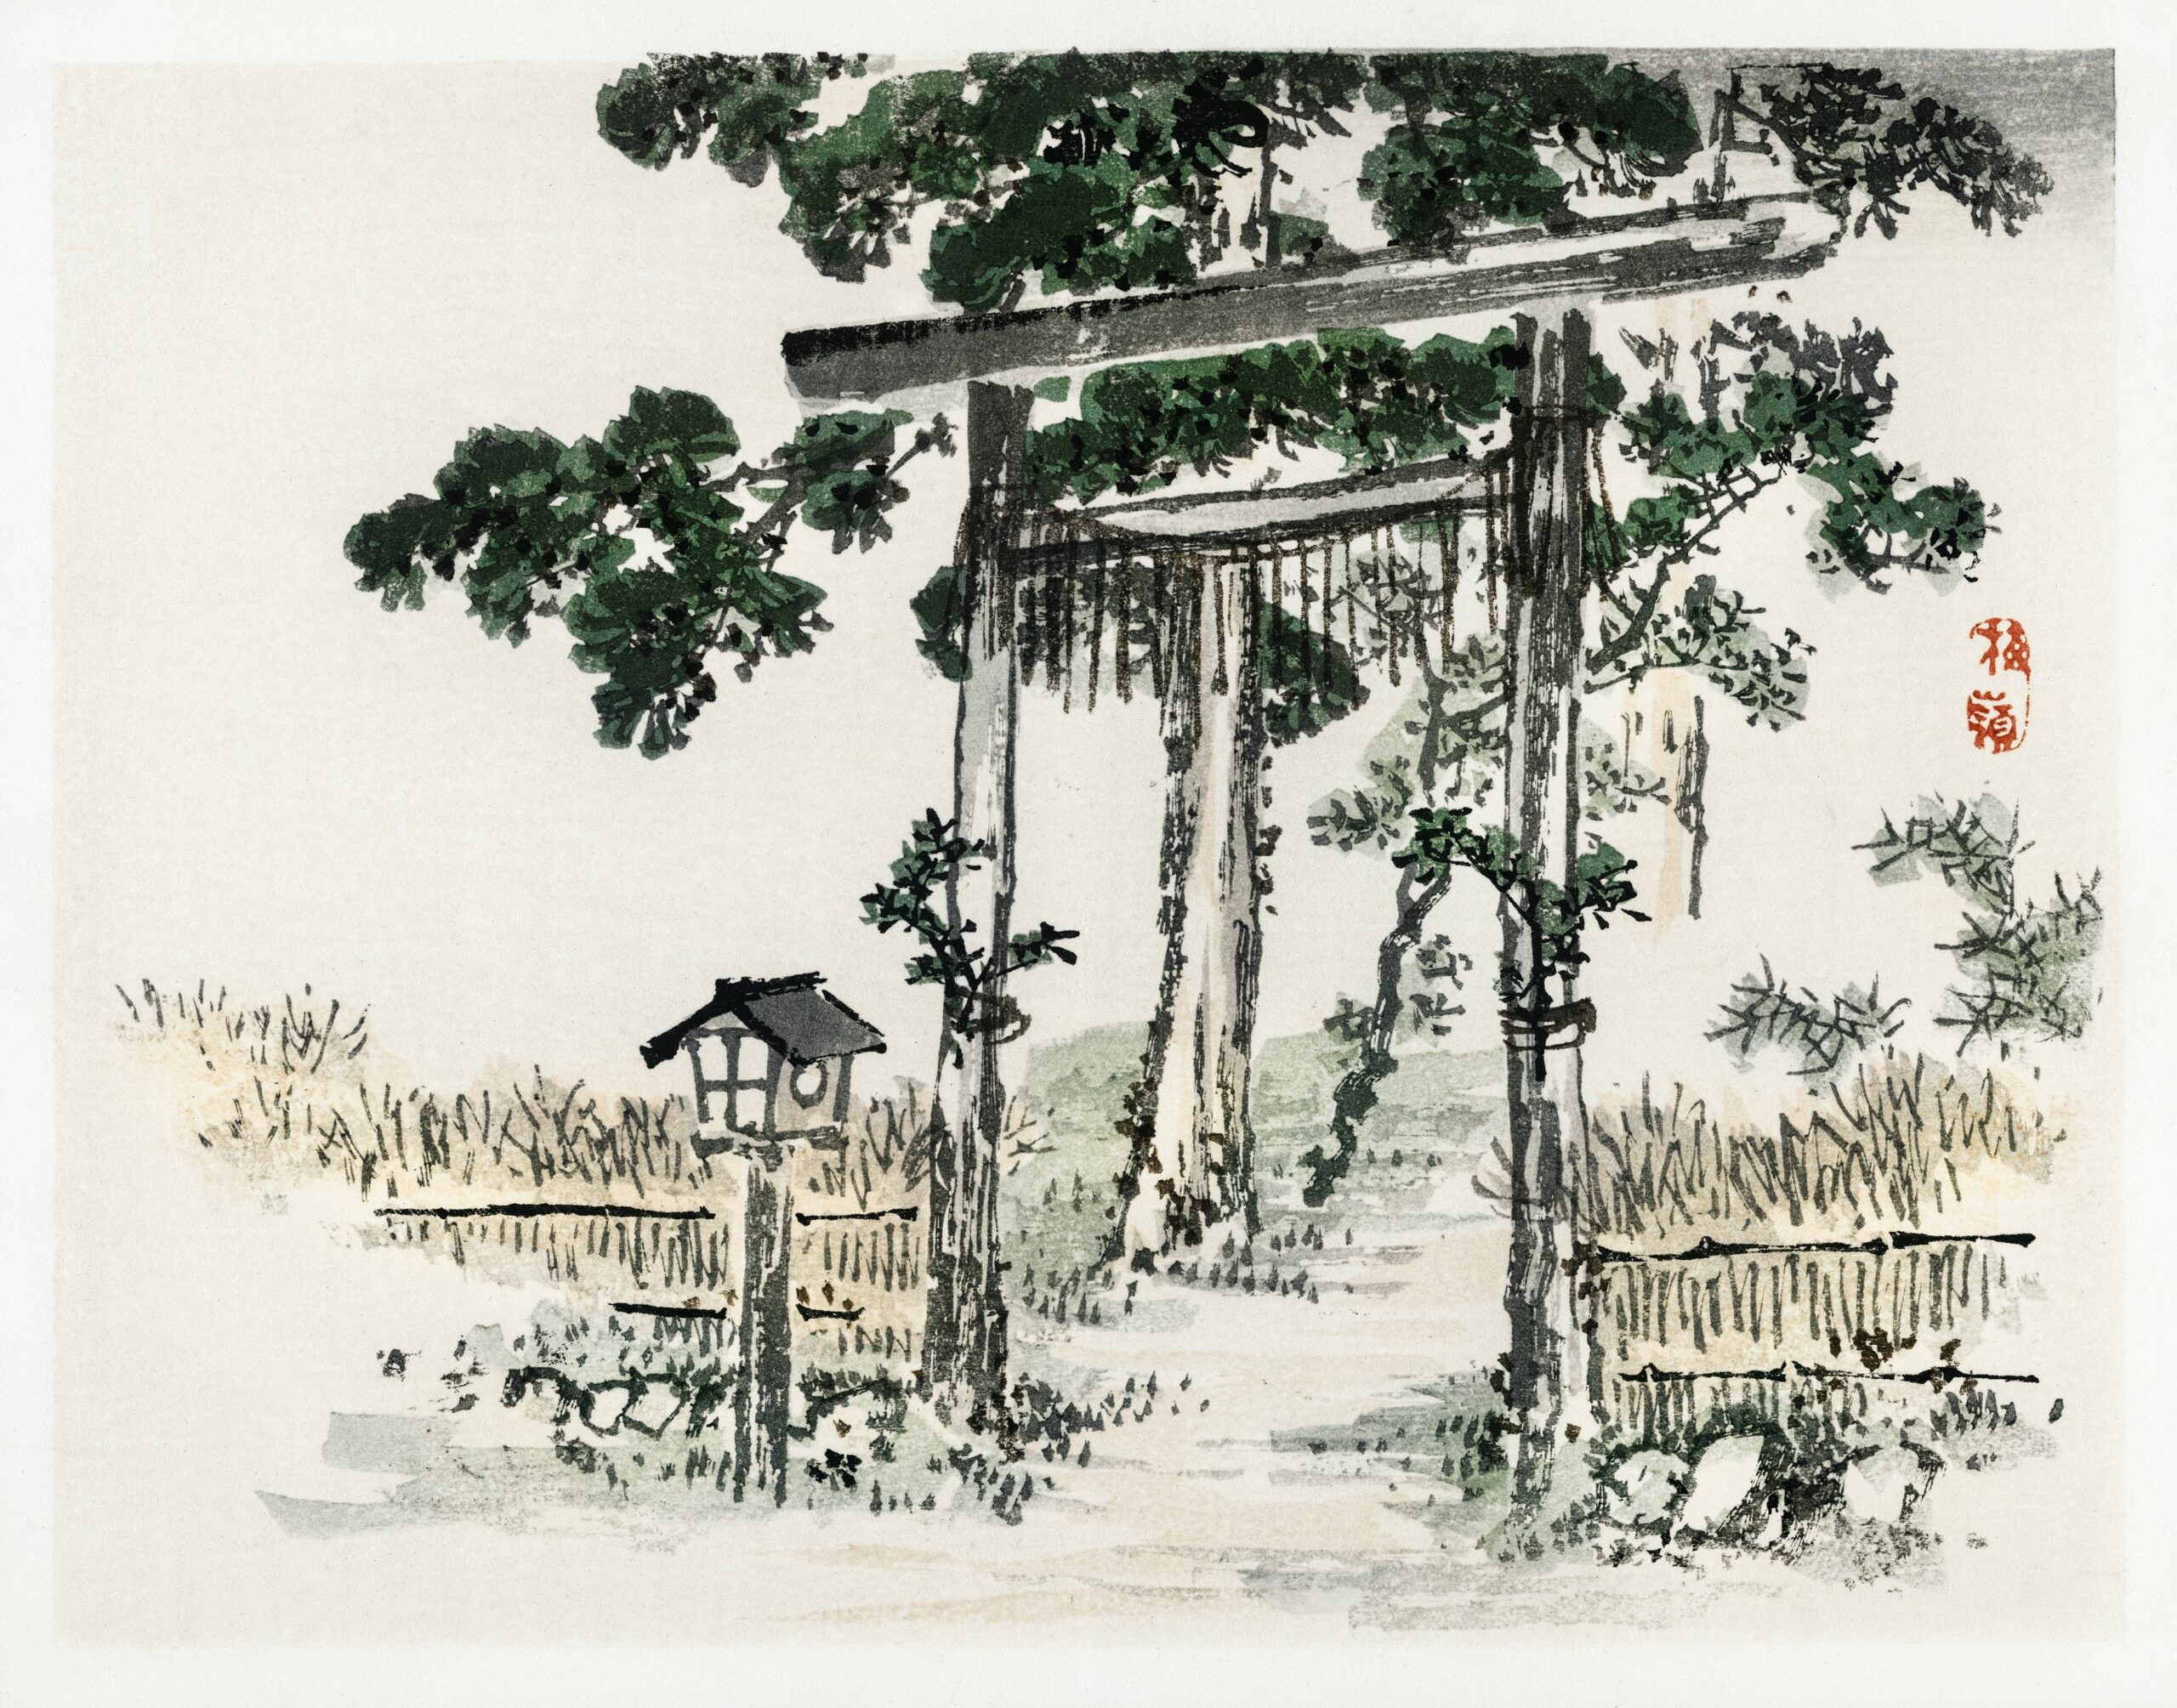 Shrine gate by Kōno Bairei (1844-1895). Digitally enhanced from our own original 1913 edition of Bairei Gakan.